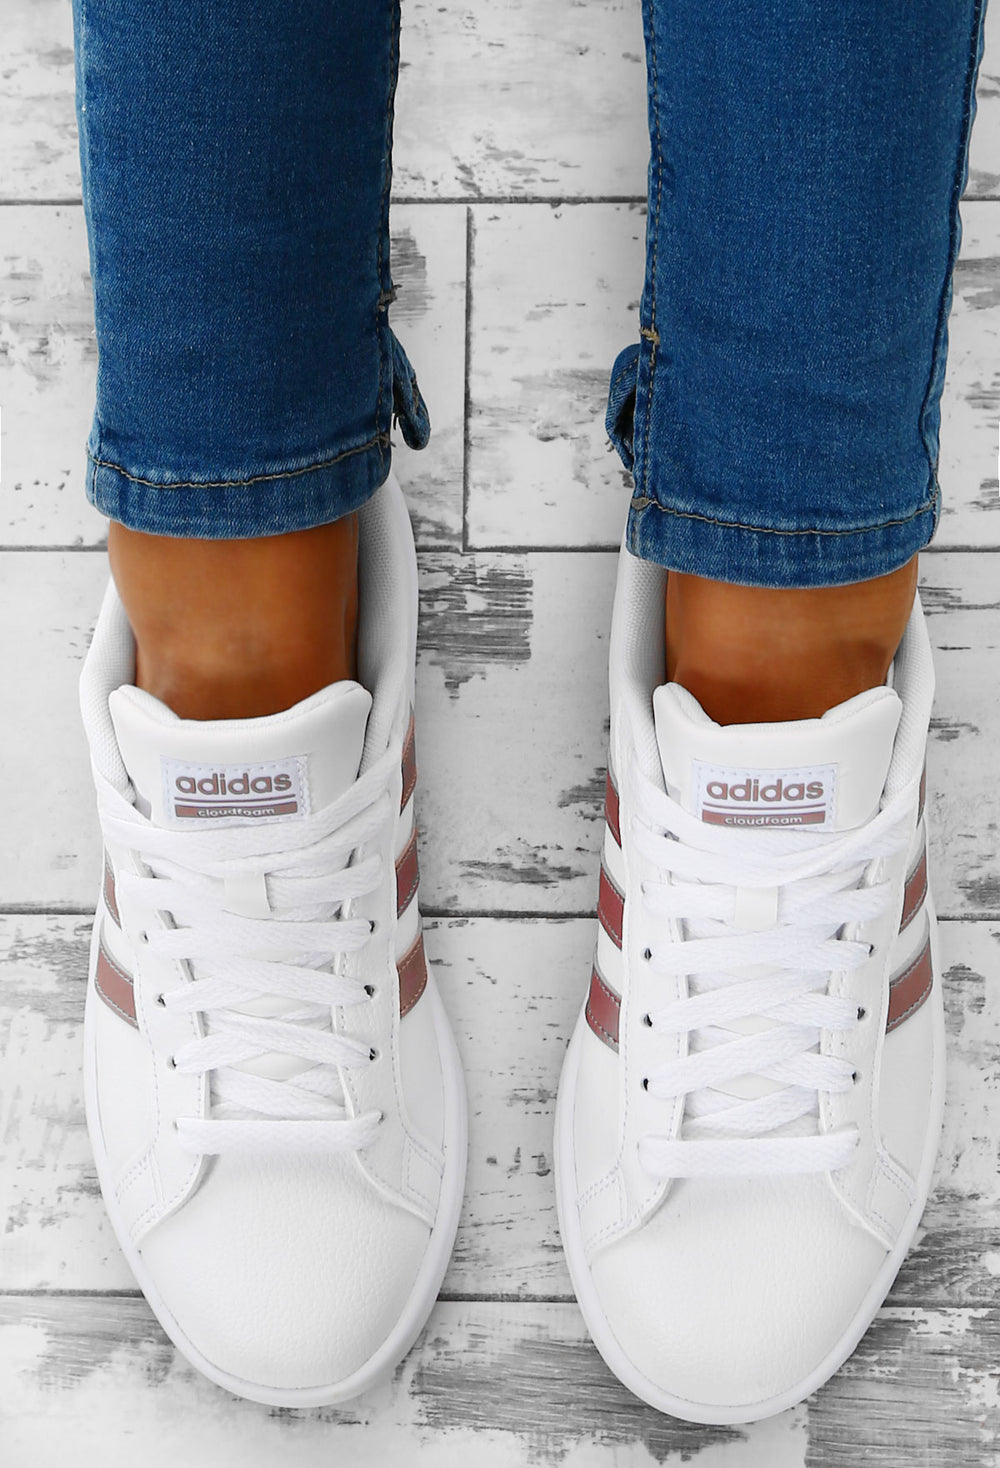 eficaz Subproducto Gruñido  Adidas Cloudfoam Advantage White and Rose Gold Stripe Trainers – Pink  Boutique UK